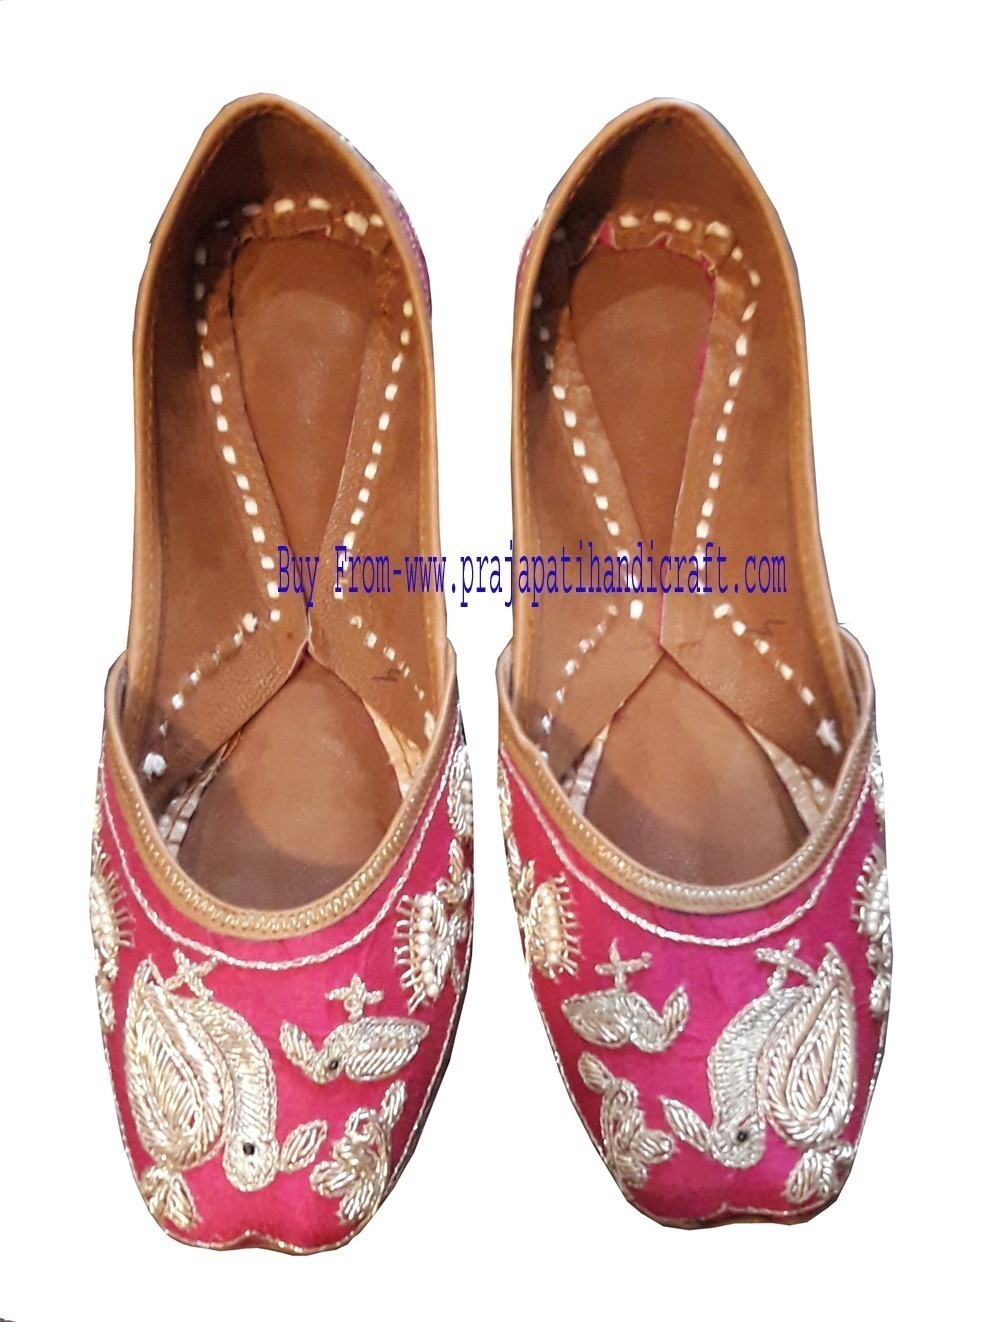 punjabi jutti khussa shoes indian shoes mojari